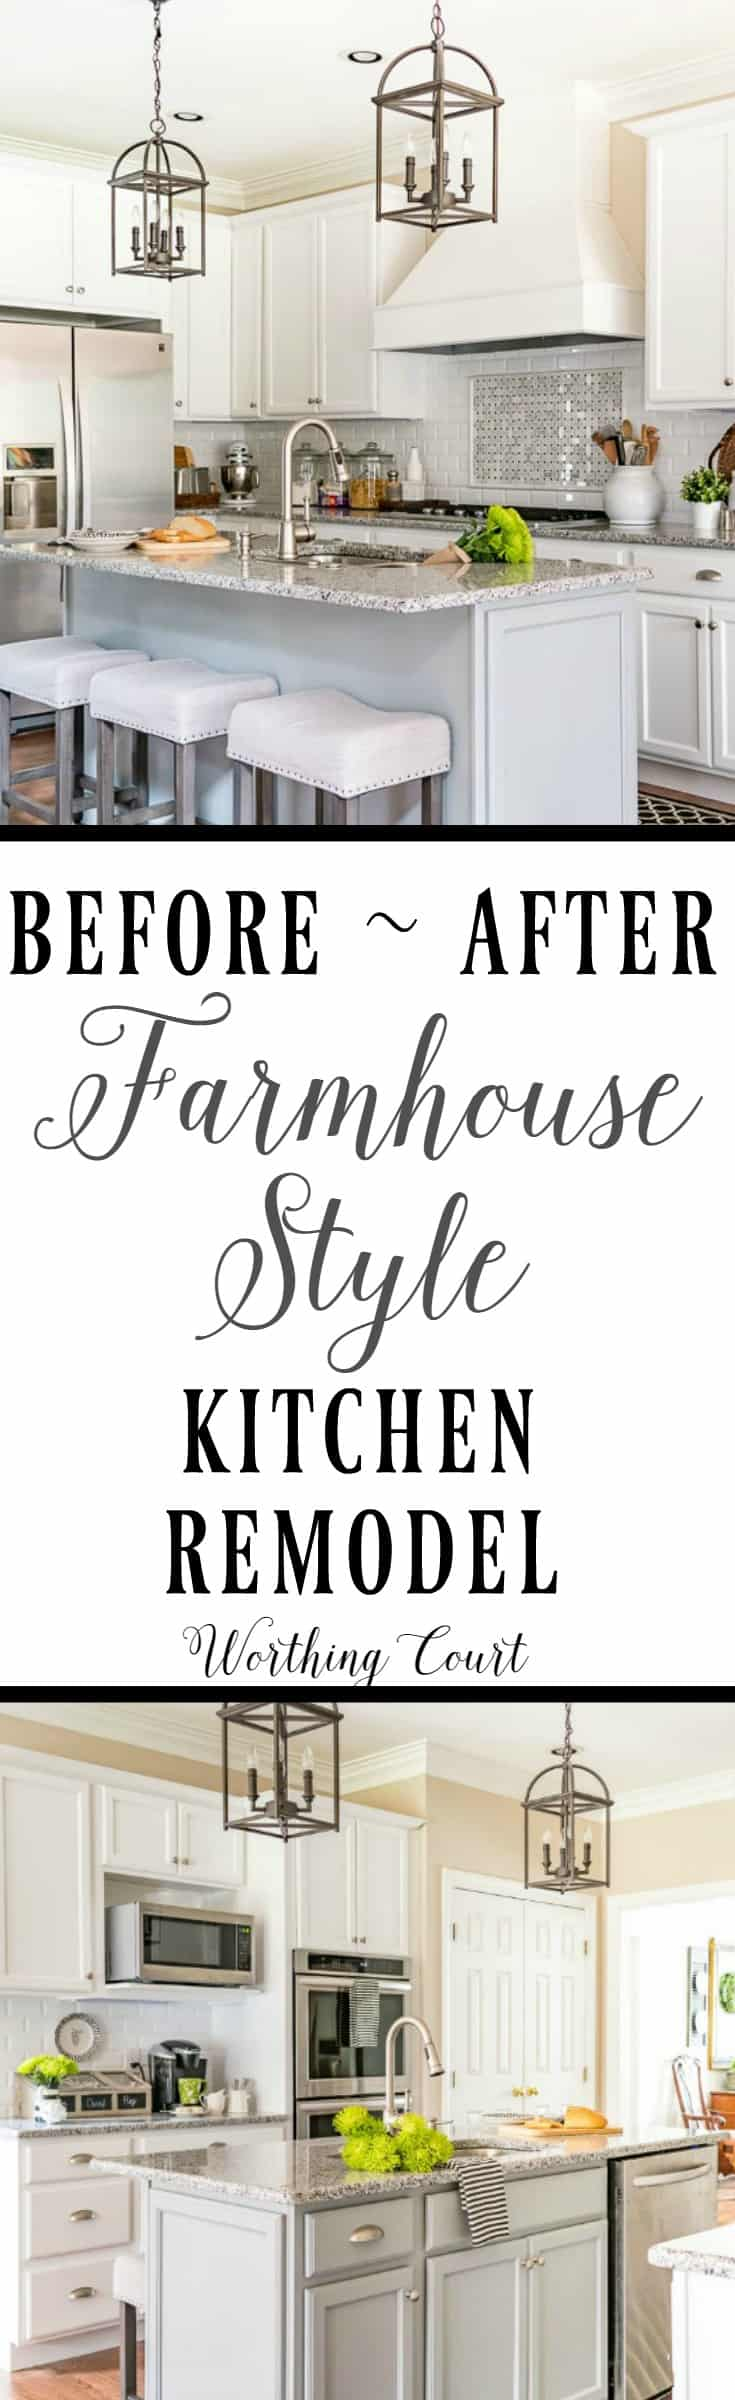 Before and After Farmhouse Style Kitchen Remodel || Worthing Court